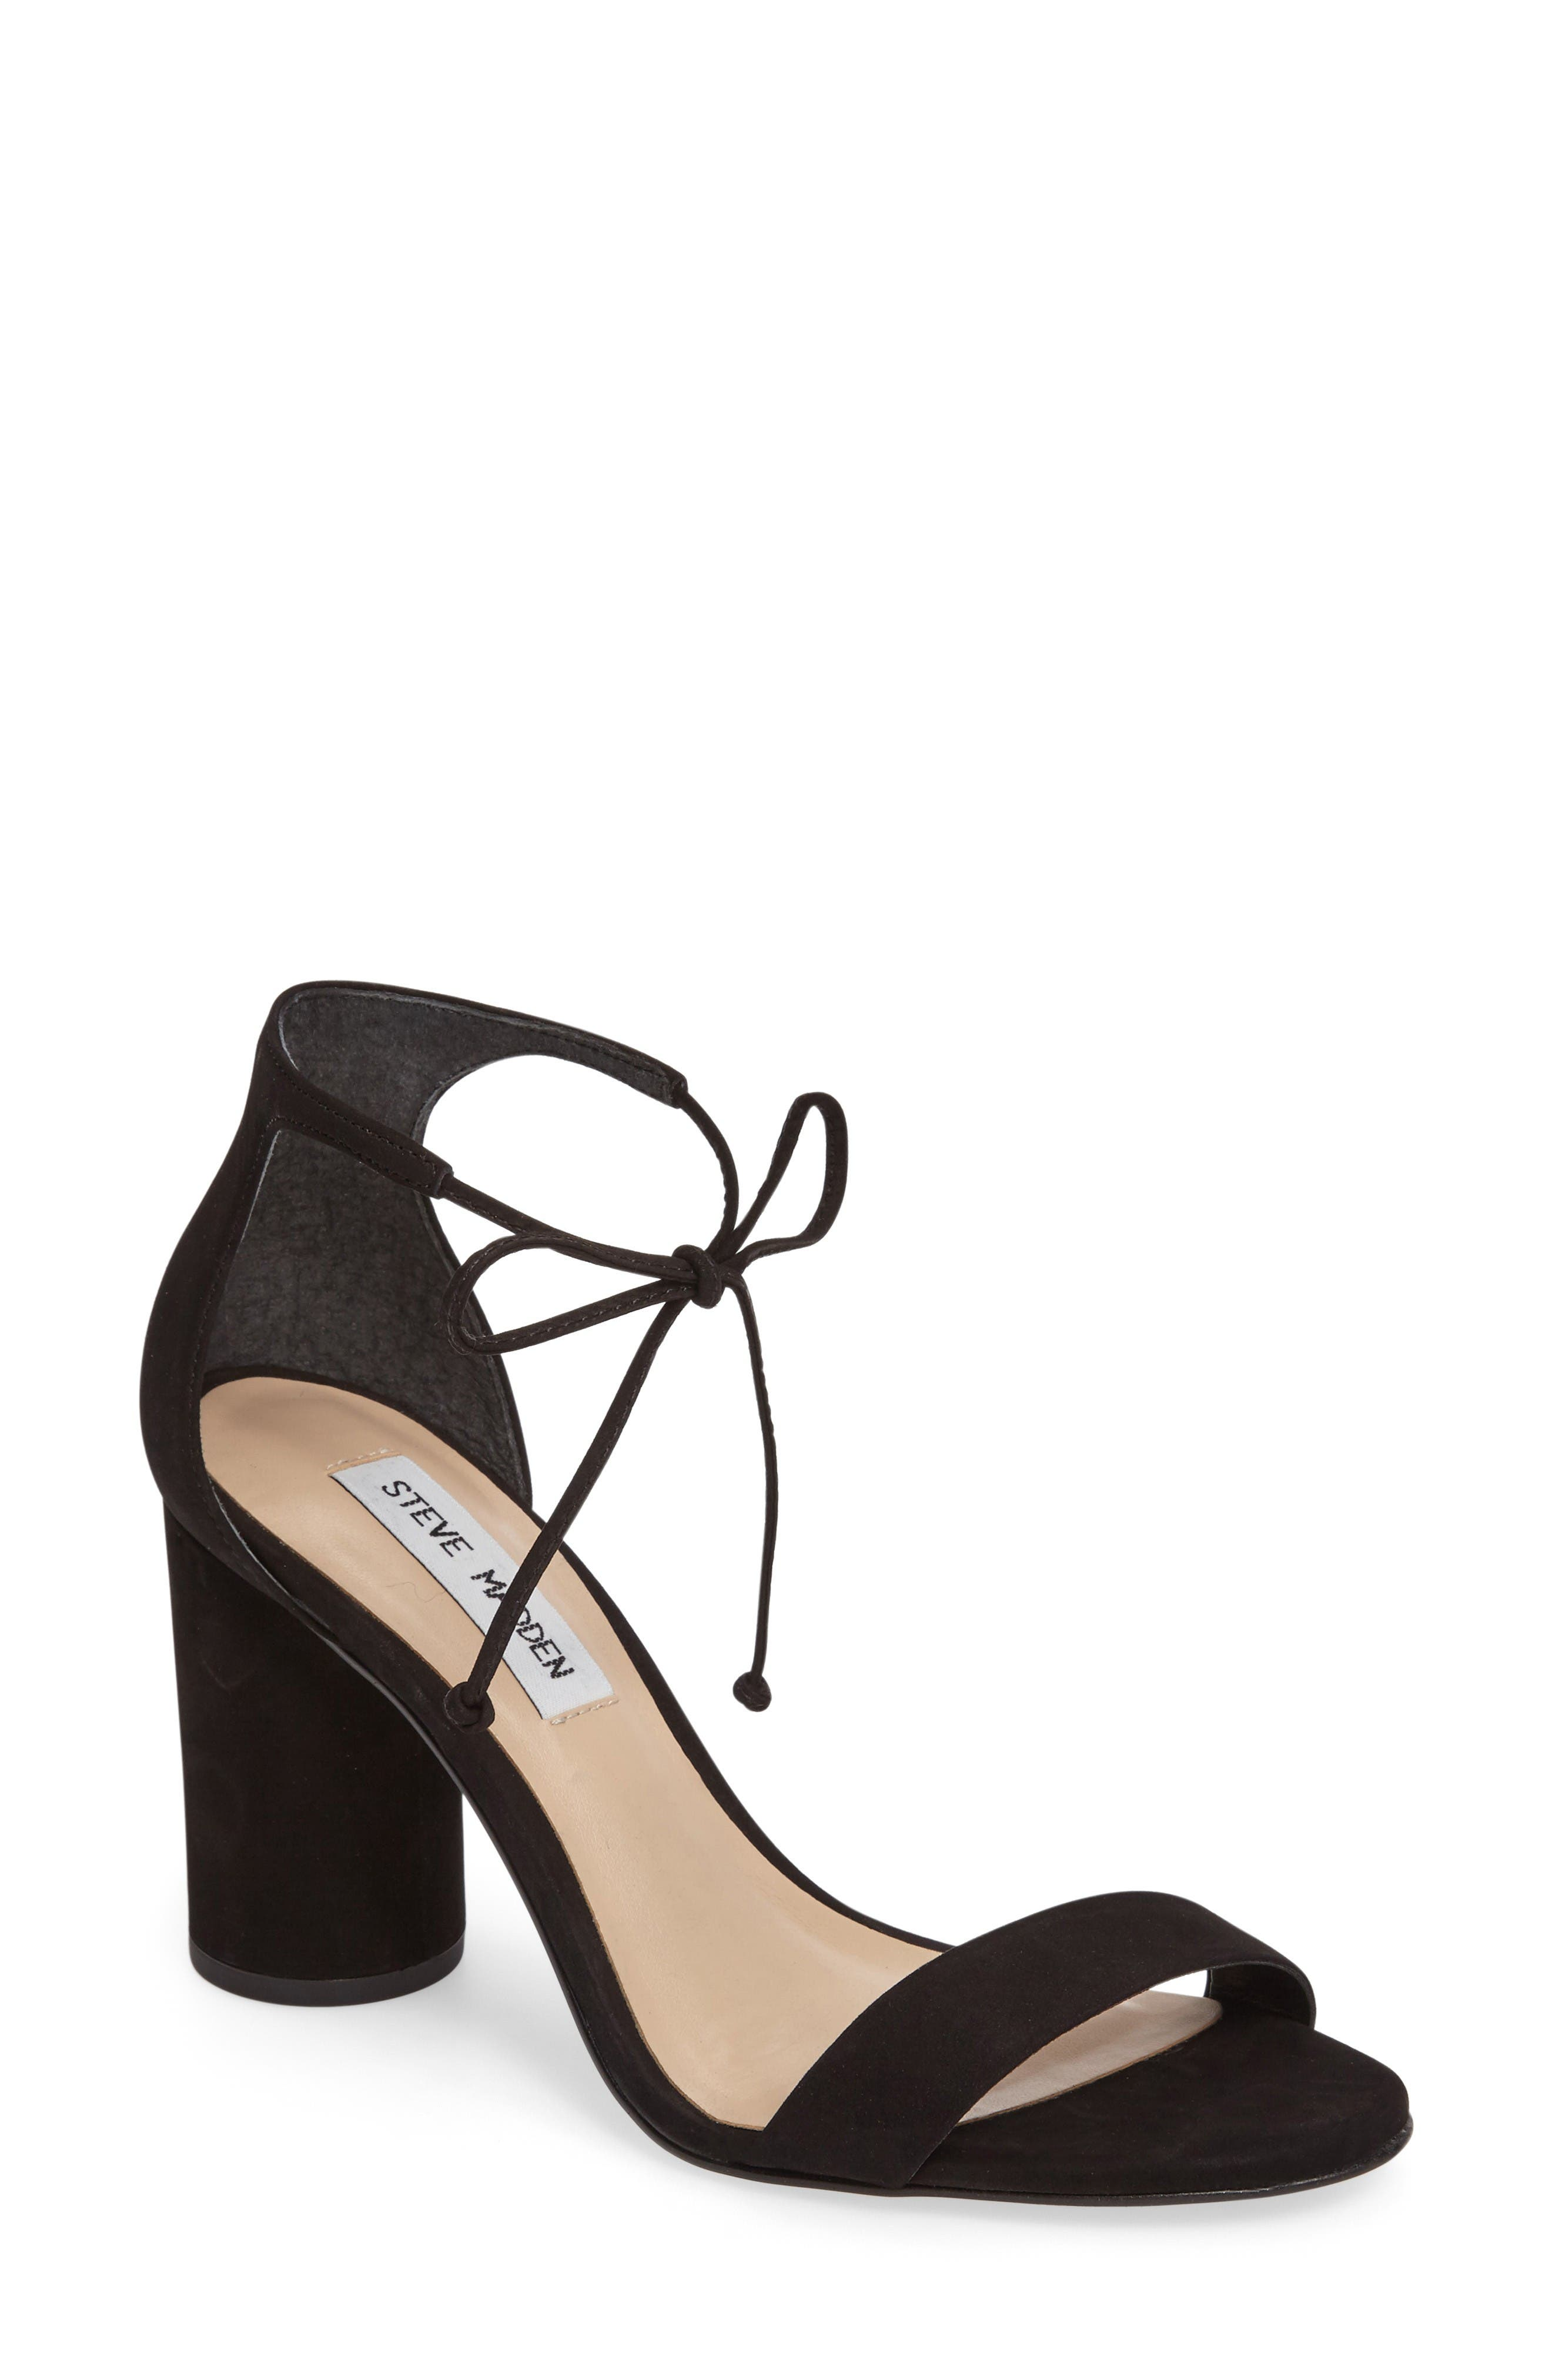 Main Image - Steve Madden Shays Lace-Up Sandal (Women)